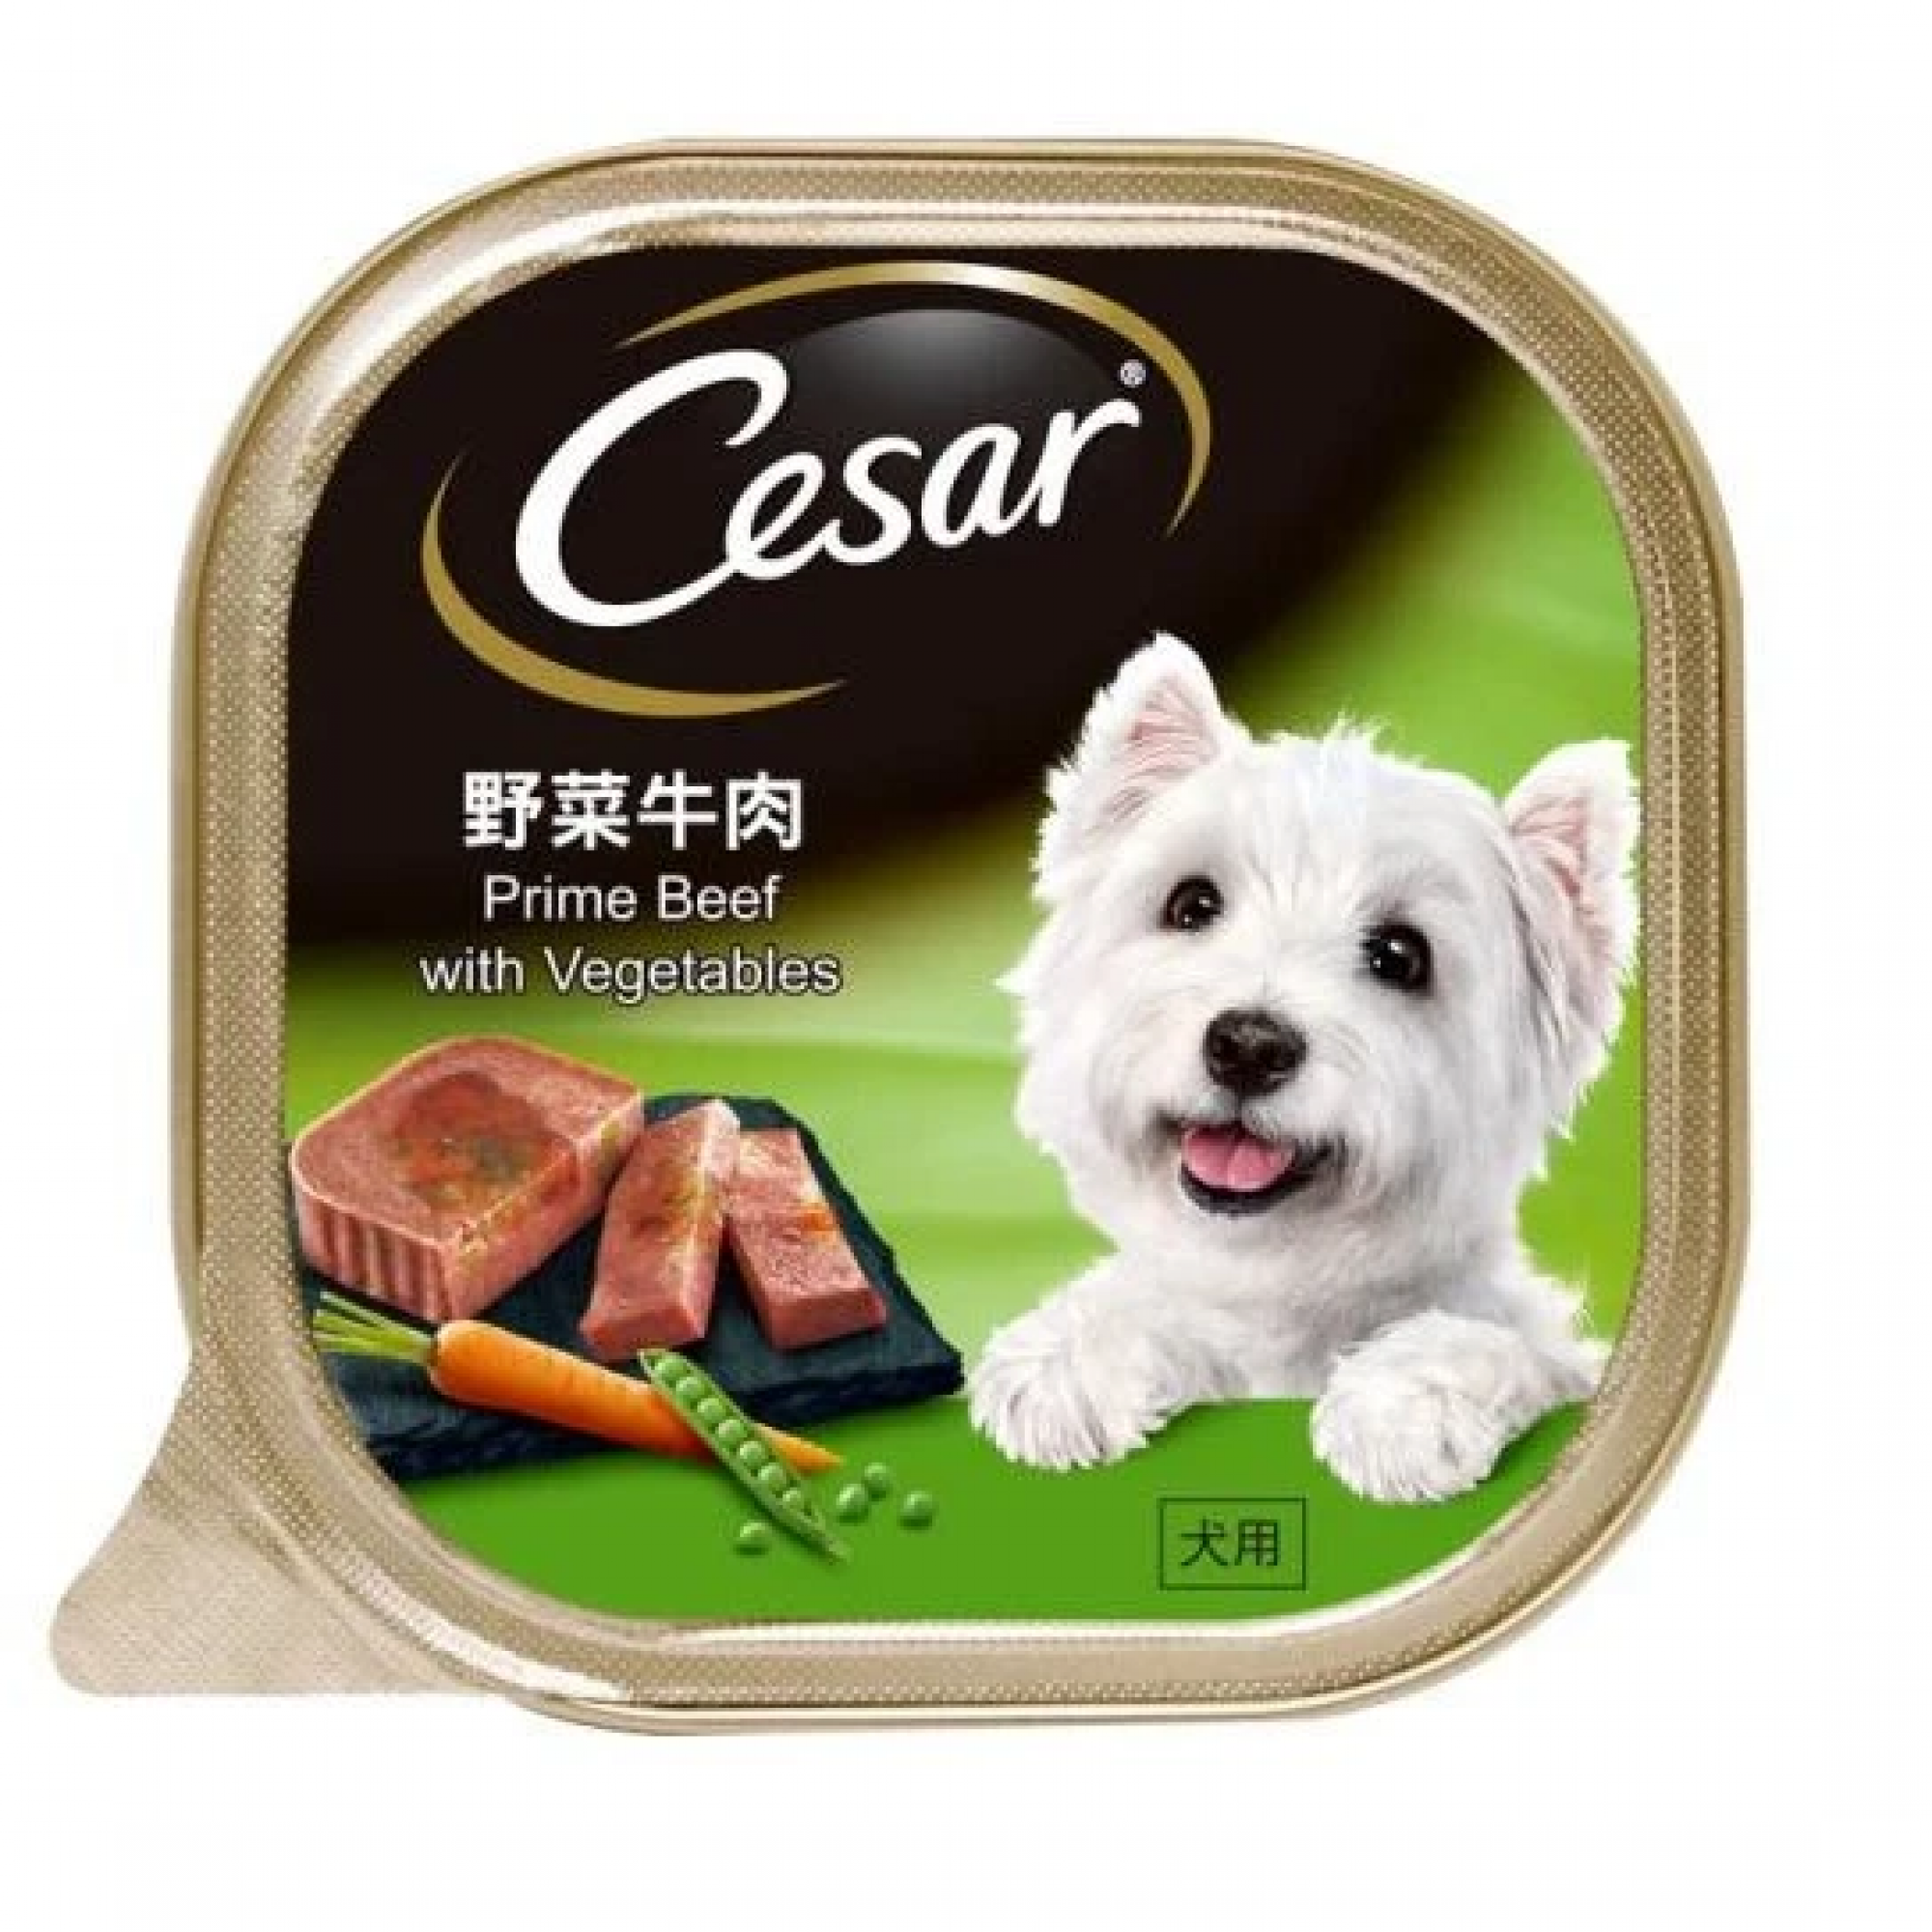 Cesar - Prime Beef with Vegetables Pate Dog Food 100g